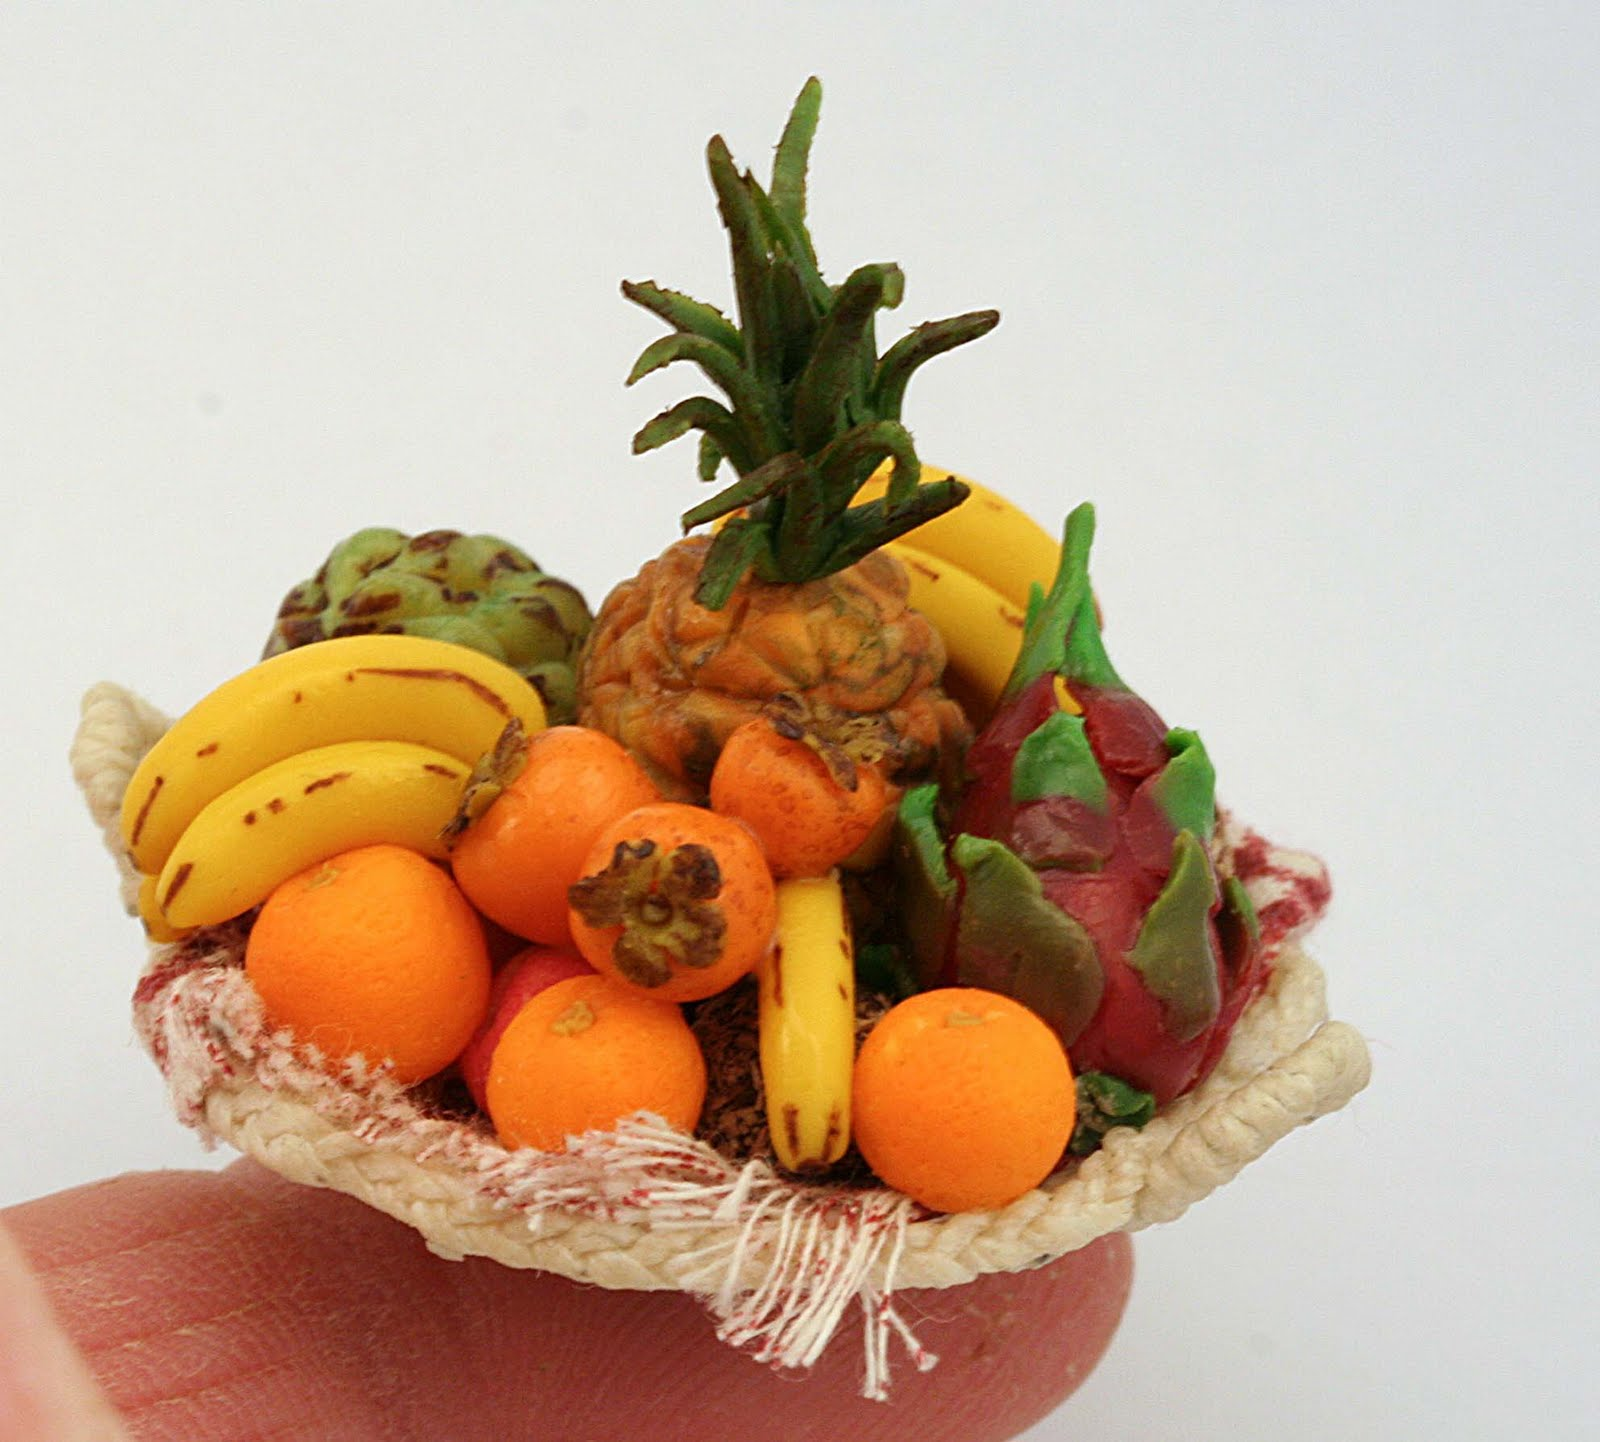 Fruit Baskets Linsminiartform A Tropical Fruit Basket